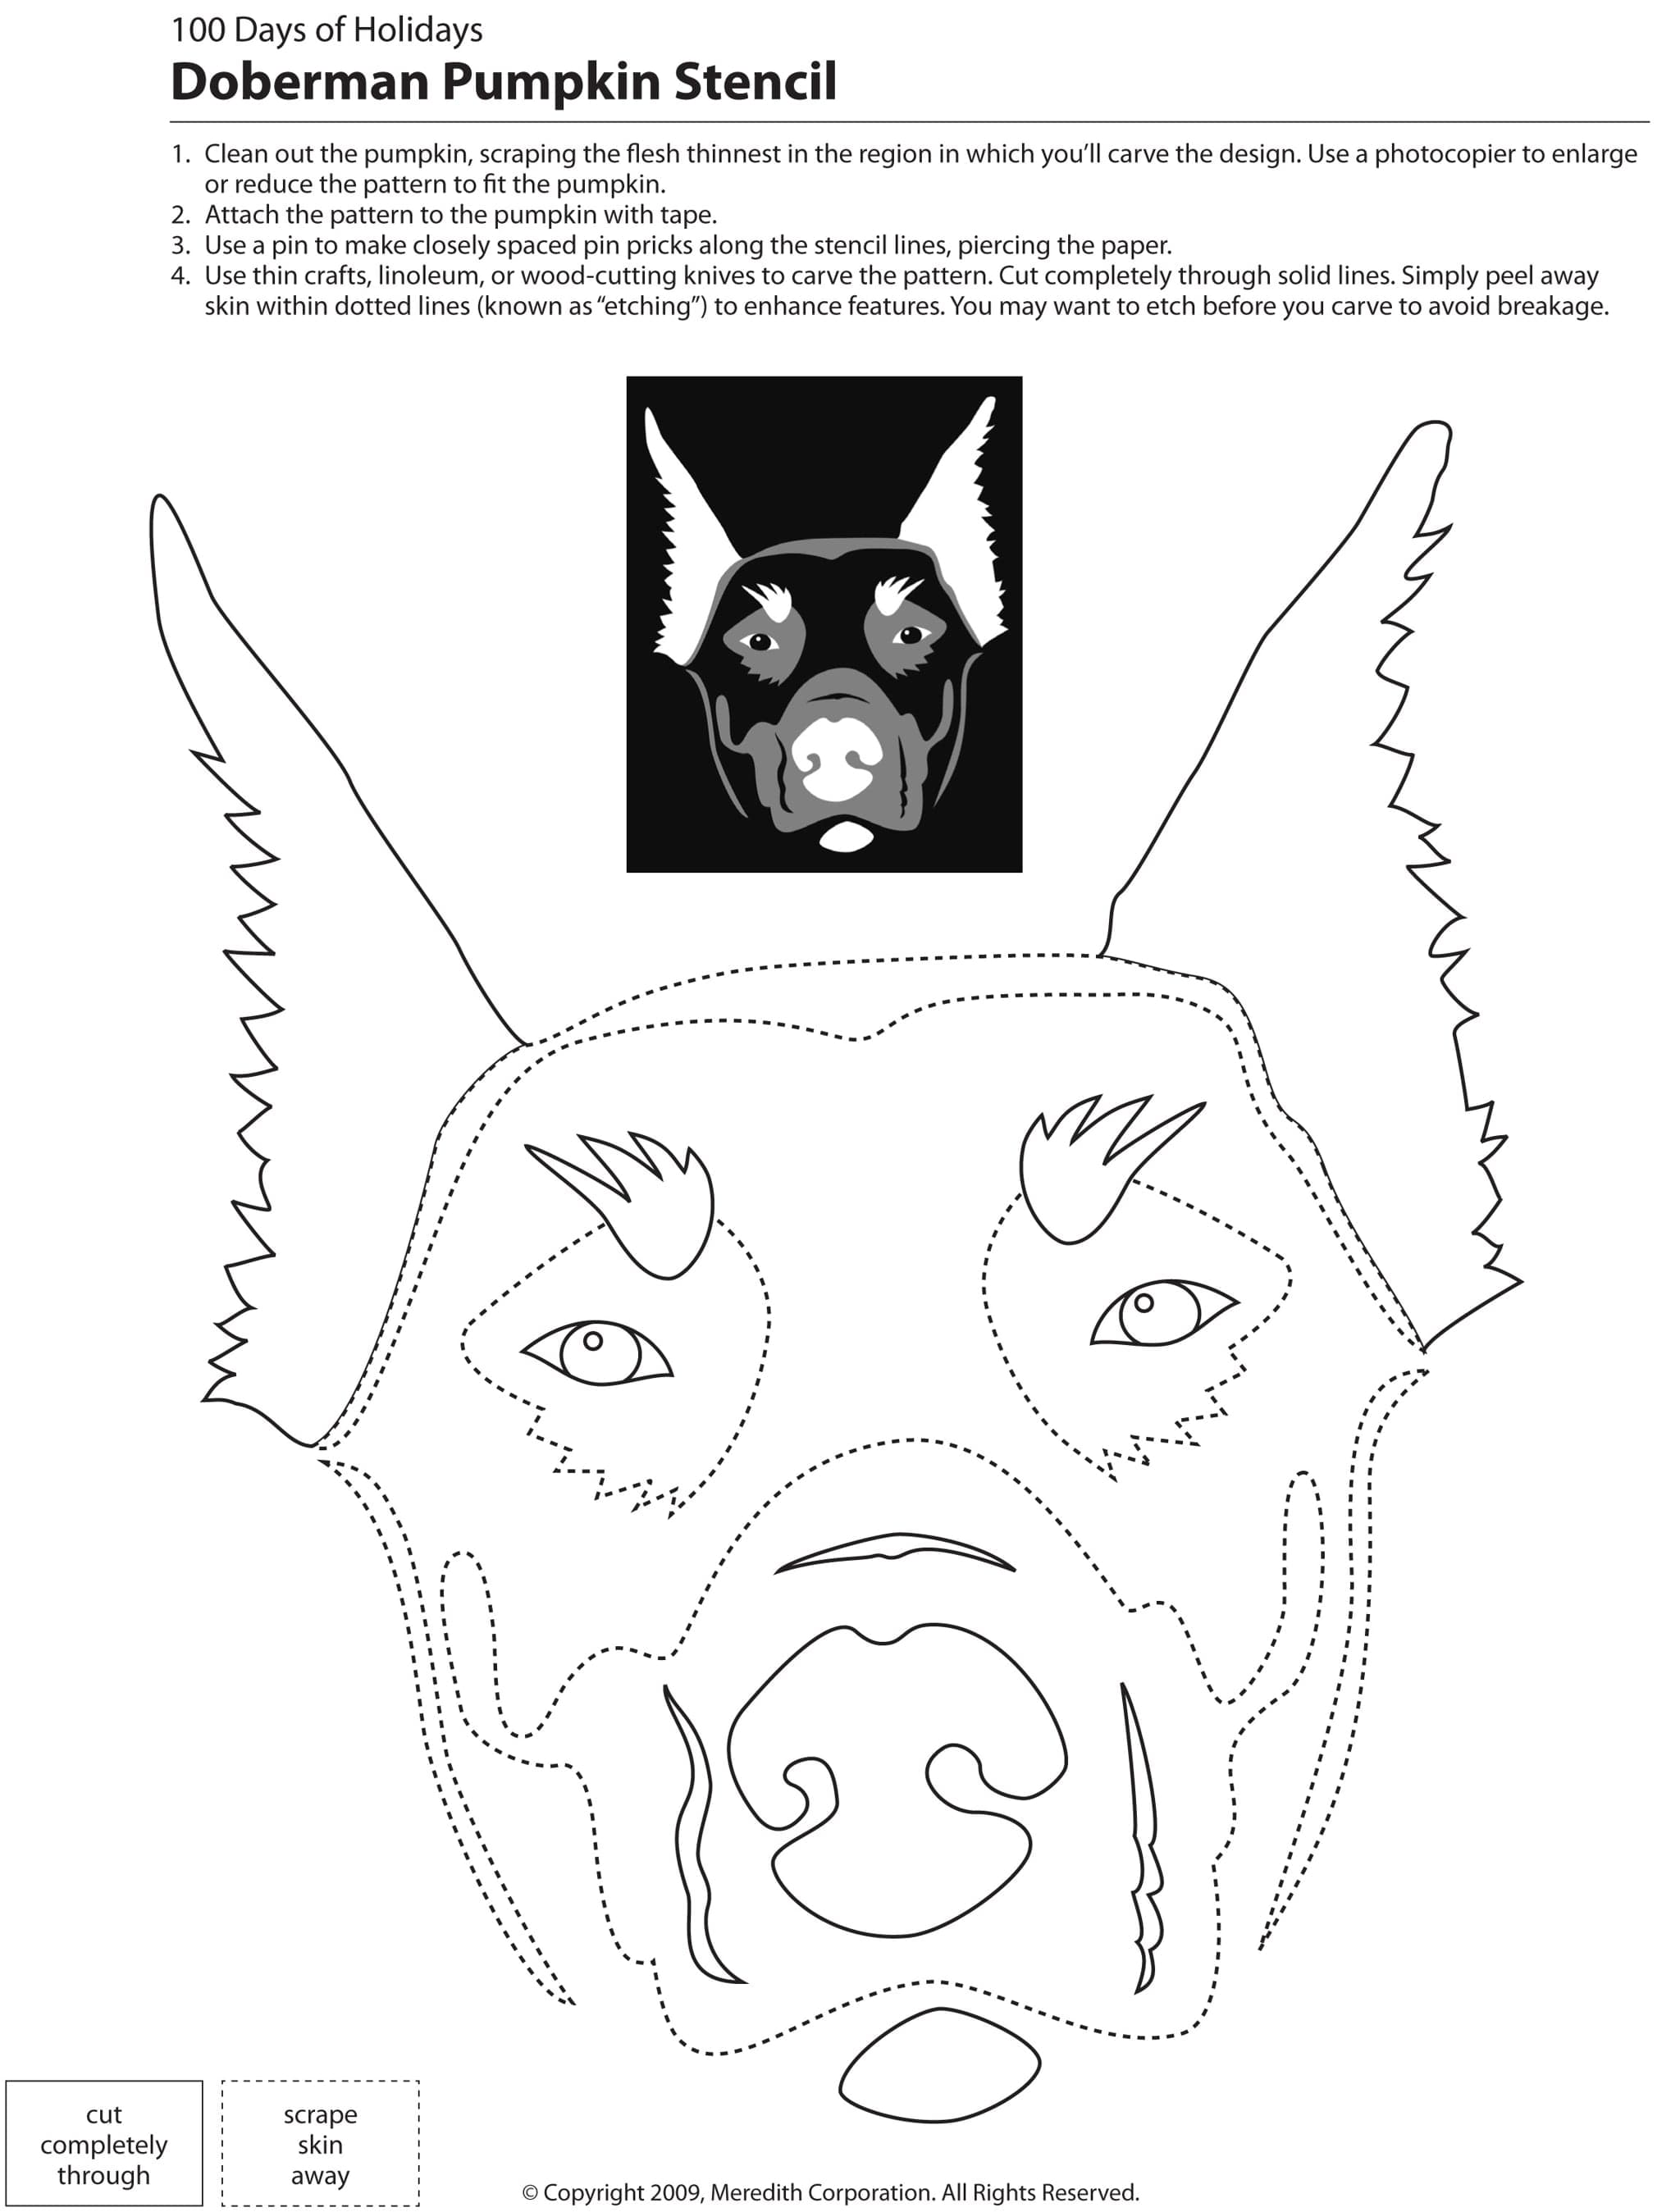 Doberman with Cropped Ears Pumpkin Carving Stencil